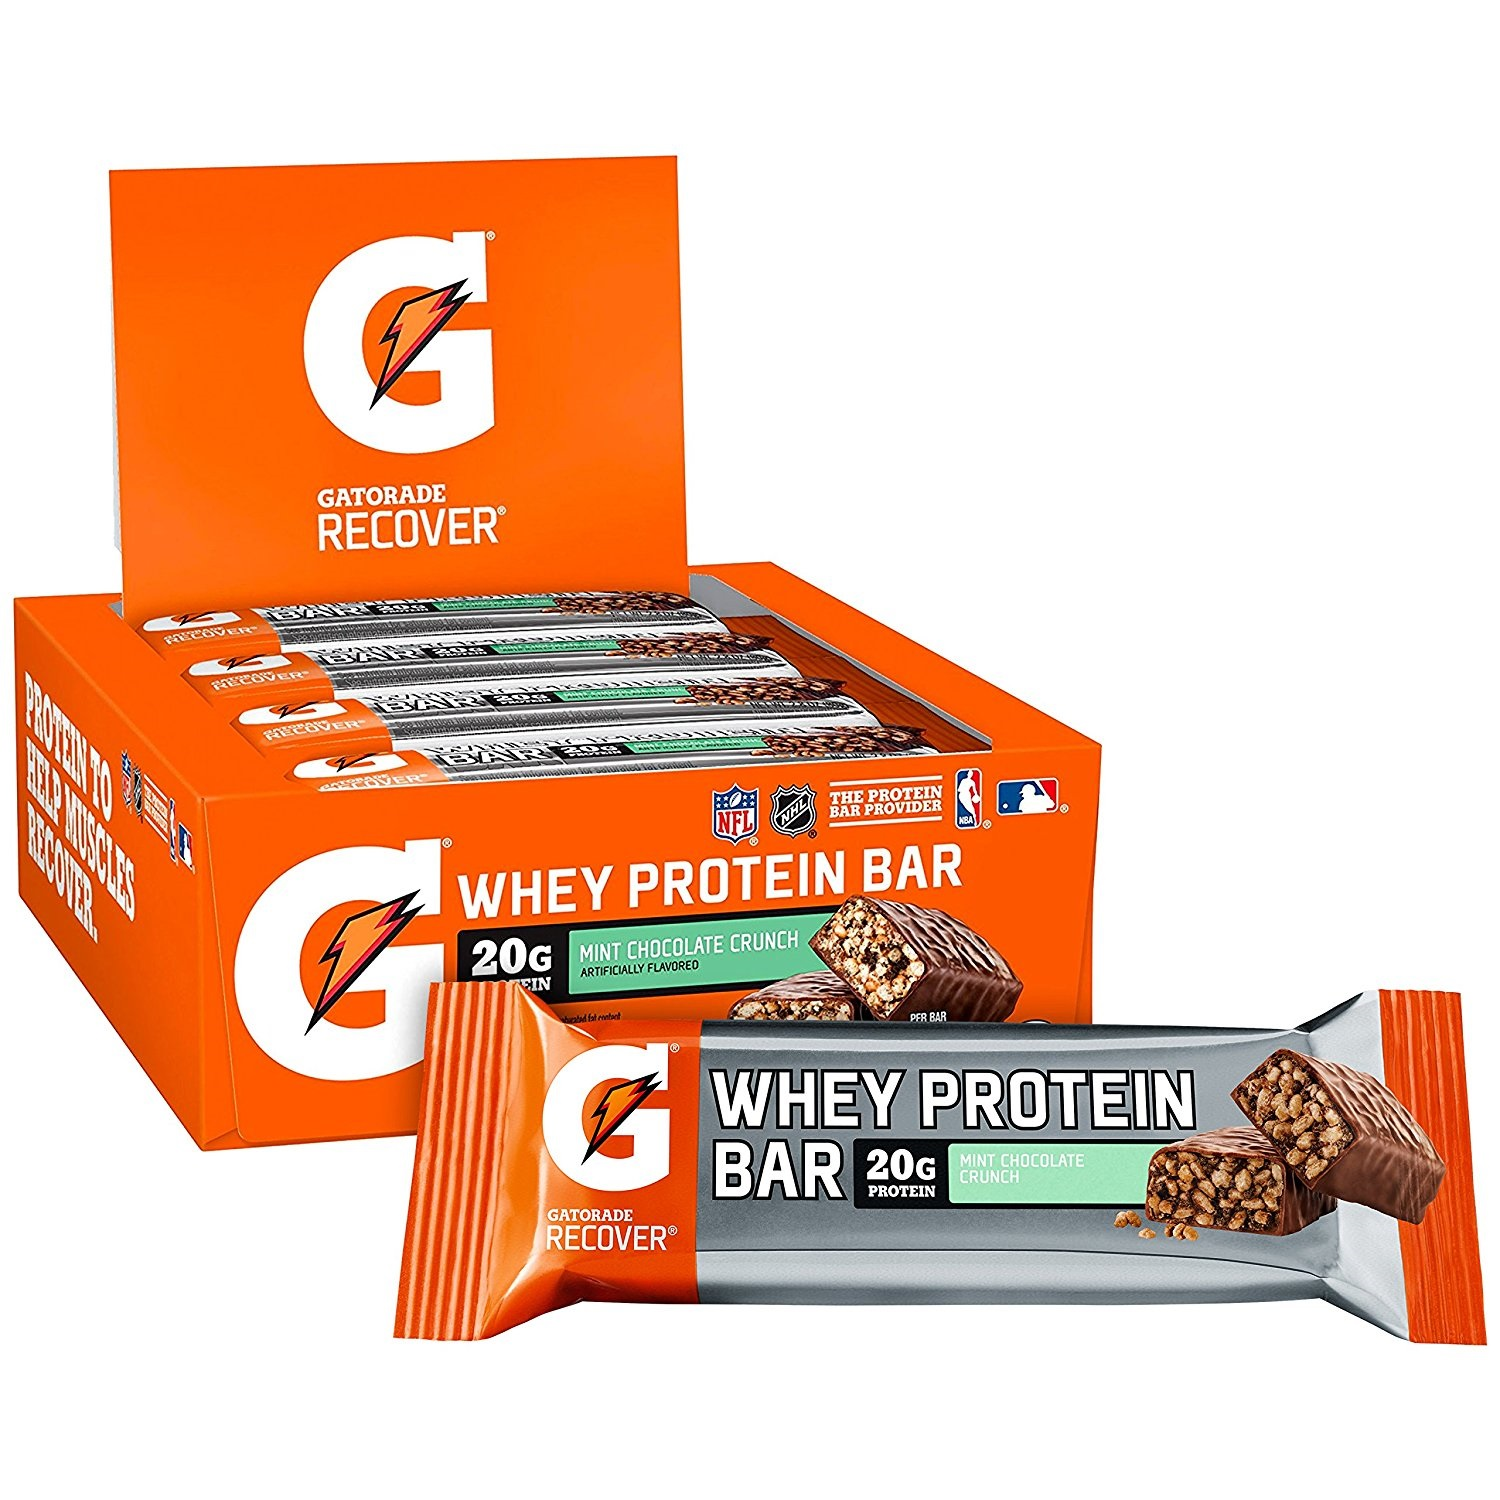 Gatorade Mini Chocolate Crunch Whey Protein Bar, 2.8 Oz.